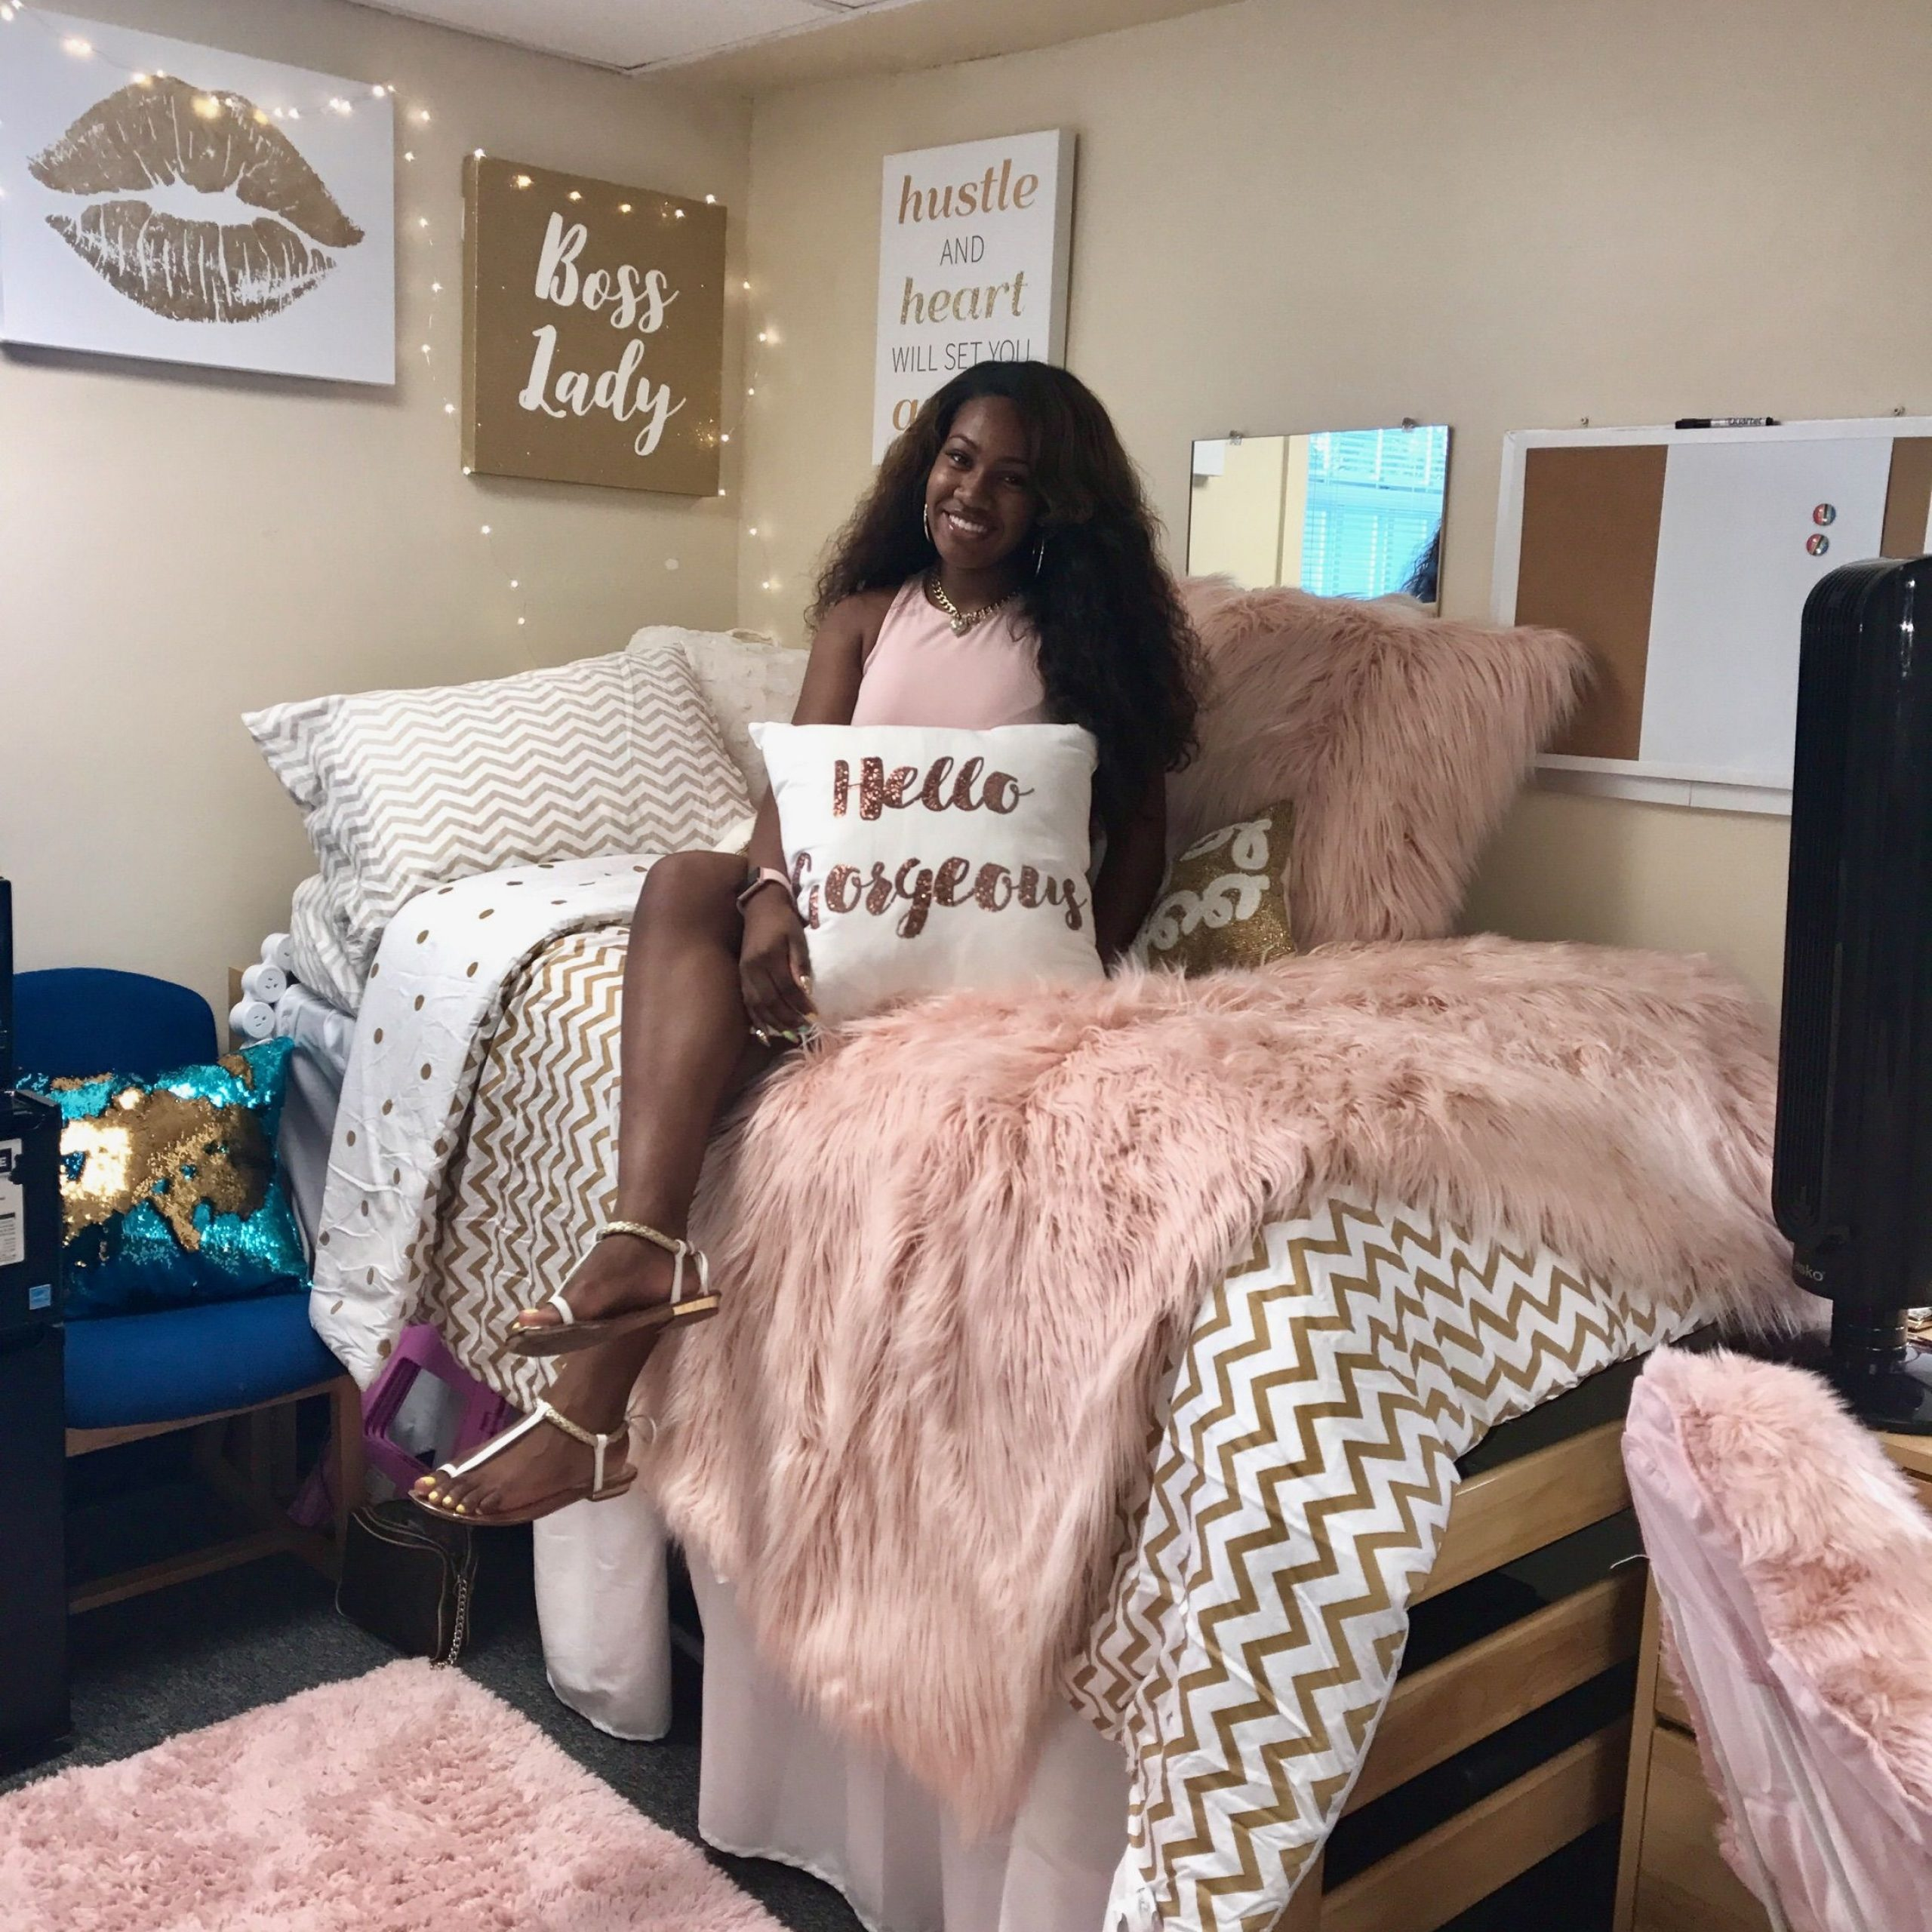 Engaging Dorm Decorating Ideas for Girls On Exquisite Pin by Latanglea Clark On College Dorm Room Ideas On Dorm Decorating Ideas for Girls